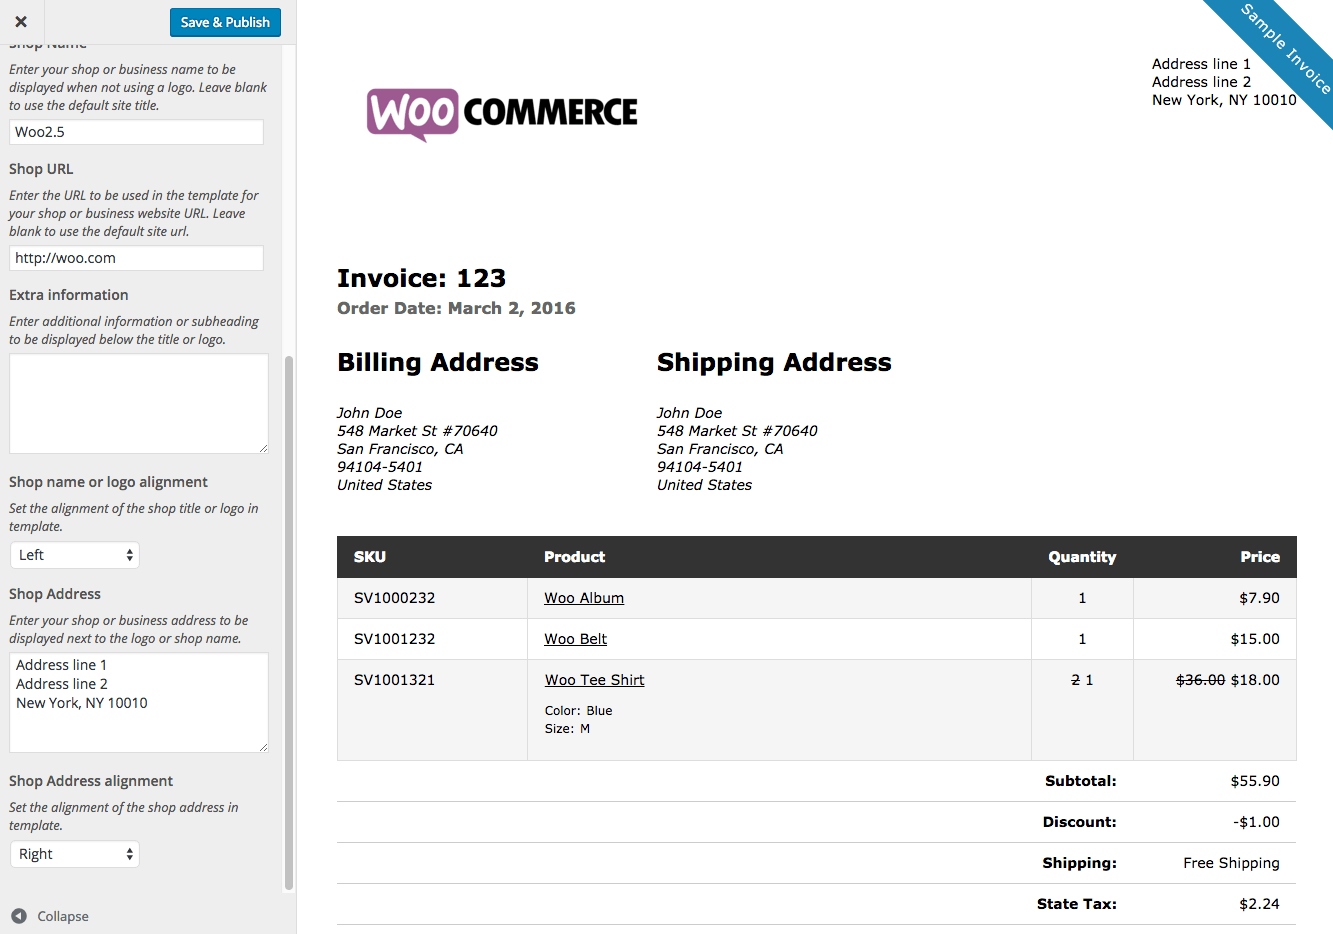 Poorboyzjeepclubus  Pleasing Print Invoices Amp Packing Lists  Woocommerce With Entrancing Woocommerce Print Invoices  Packing Lists Customizer With Delightful Free Blank Printable Invoice Also How To Make Tax Invoice In Addition Export Proforma Invoice And Invoice Data Model As Well As Cleaning Services Invoice Sample Additionally  Honda Accord Sport Invoice From Woocommercecom With Poorboyzjeepclubus  Entrancing Print Invoices Amp Packing Lists  Woocommerce With Delightful Woocommerce Print Invoices  Packing Lists Customizer And Pleasing Free Blank Printable Invoice Also How To Make Tax Invoice In Addition Export Proforma Invoice From Woocommercecom